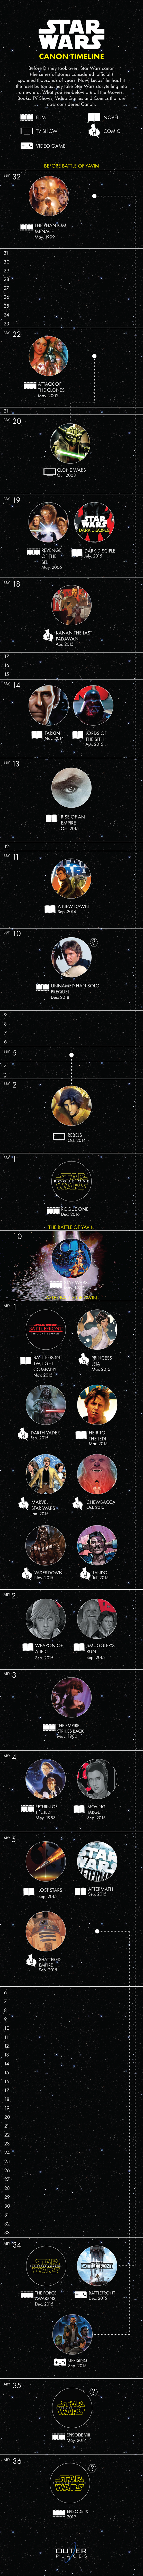 geeky-infographic-everything-thats-canon-in-star-wars